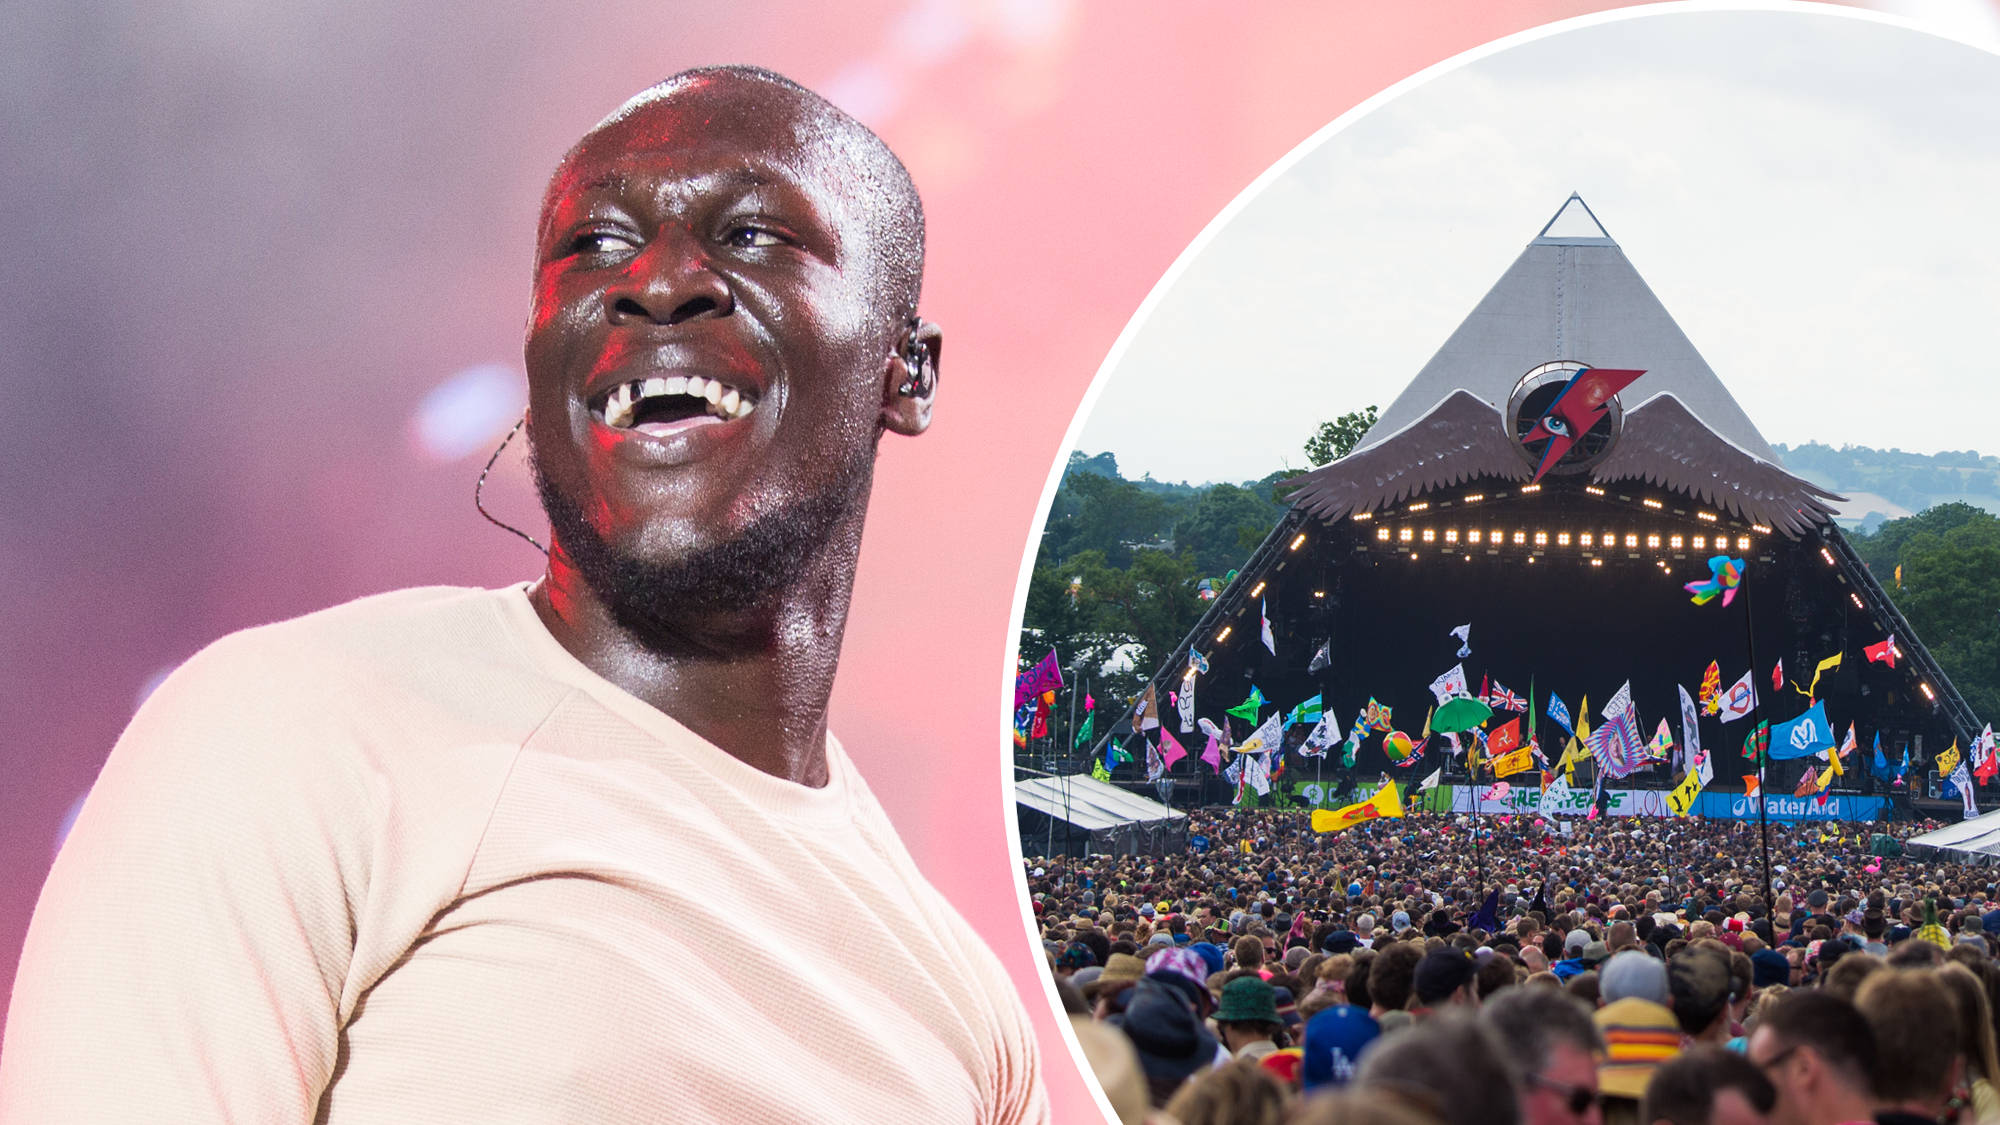 Stormzy Glastonbury 2019 Performance: How To Watch, Setlist, Times & More